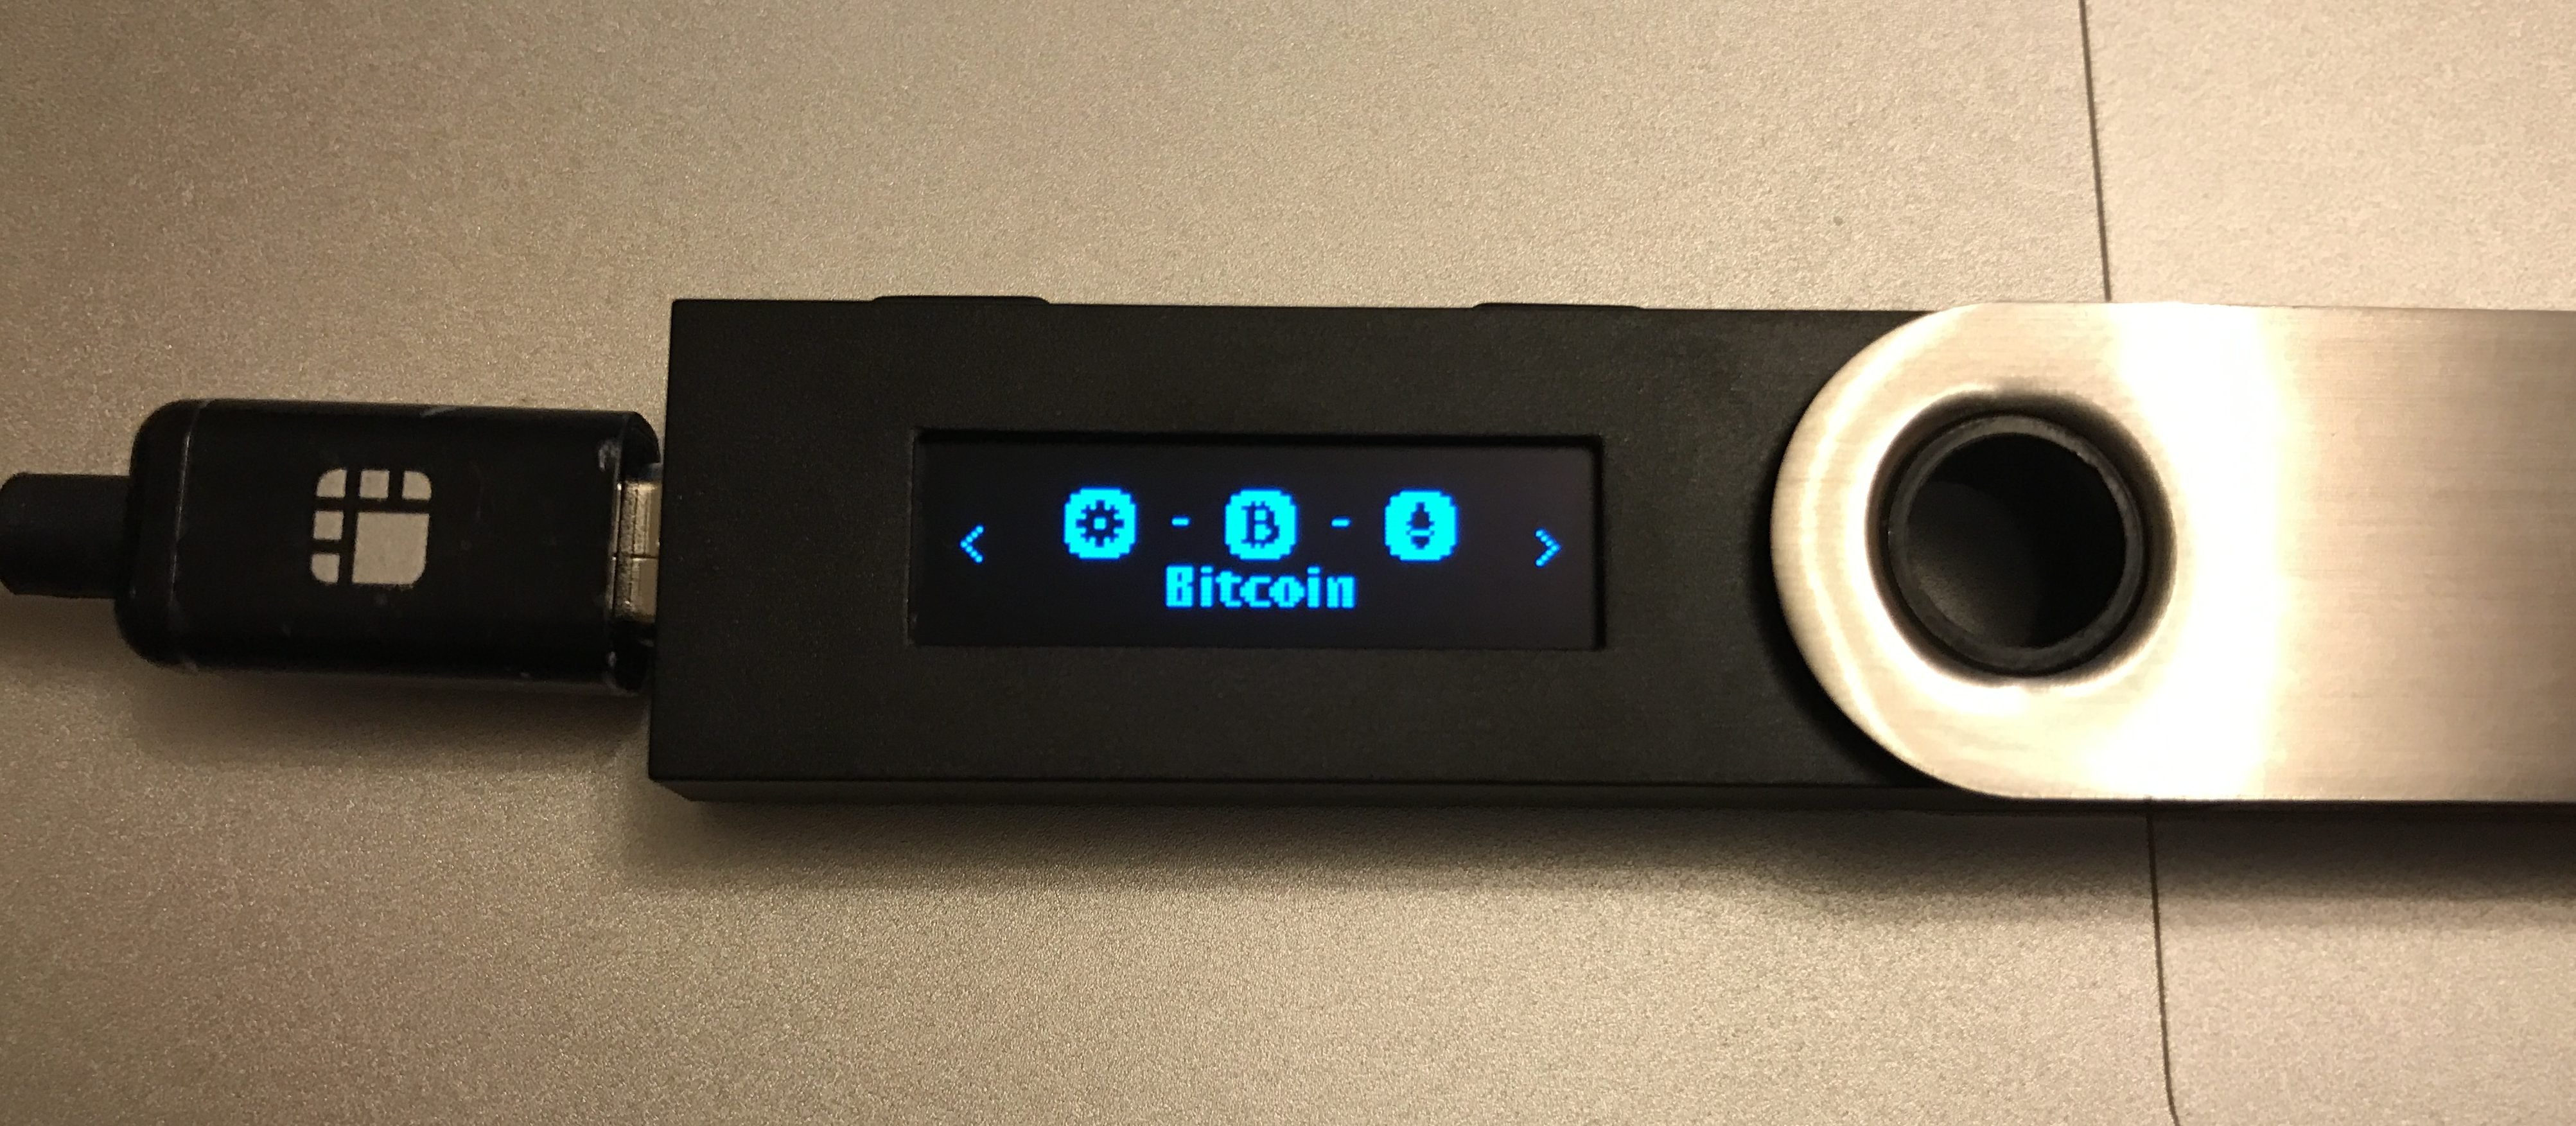 Ledger Nano S - Bitcoin